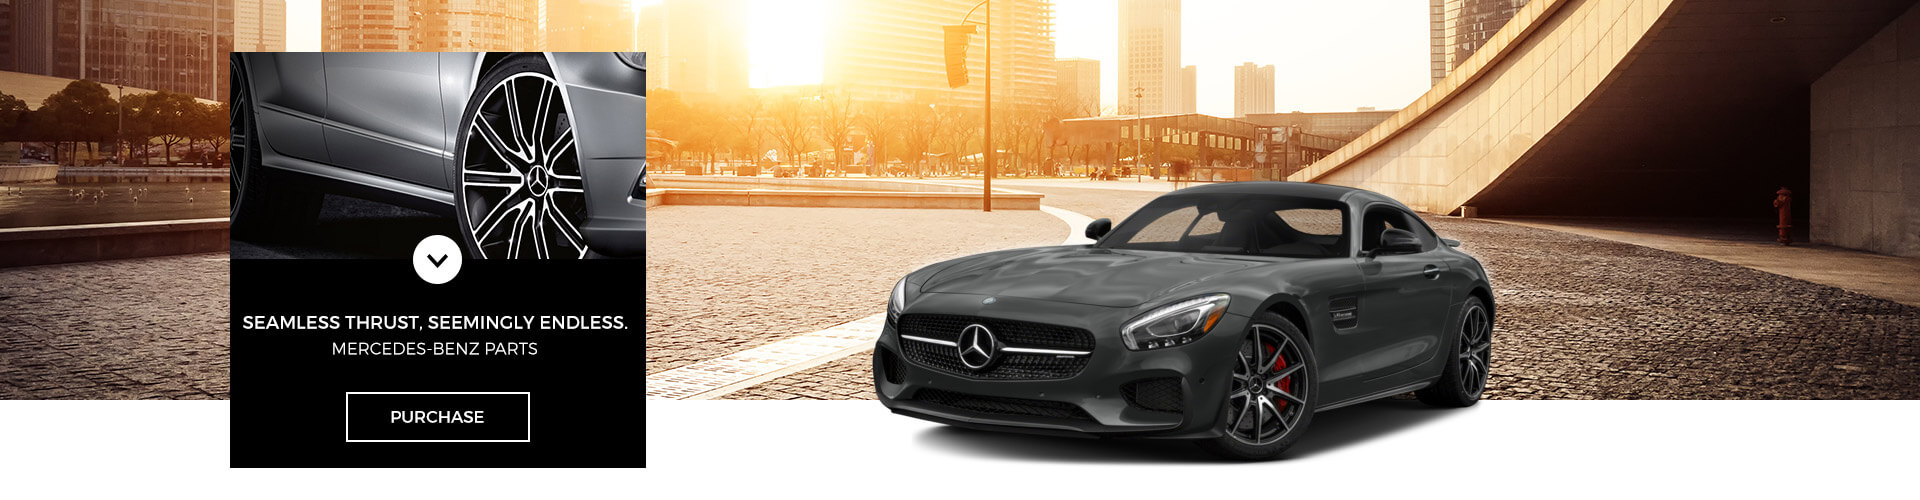 Mercedes benz parts for Mercedes benz aftermarket accessories